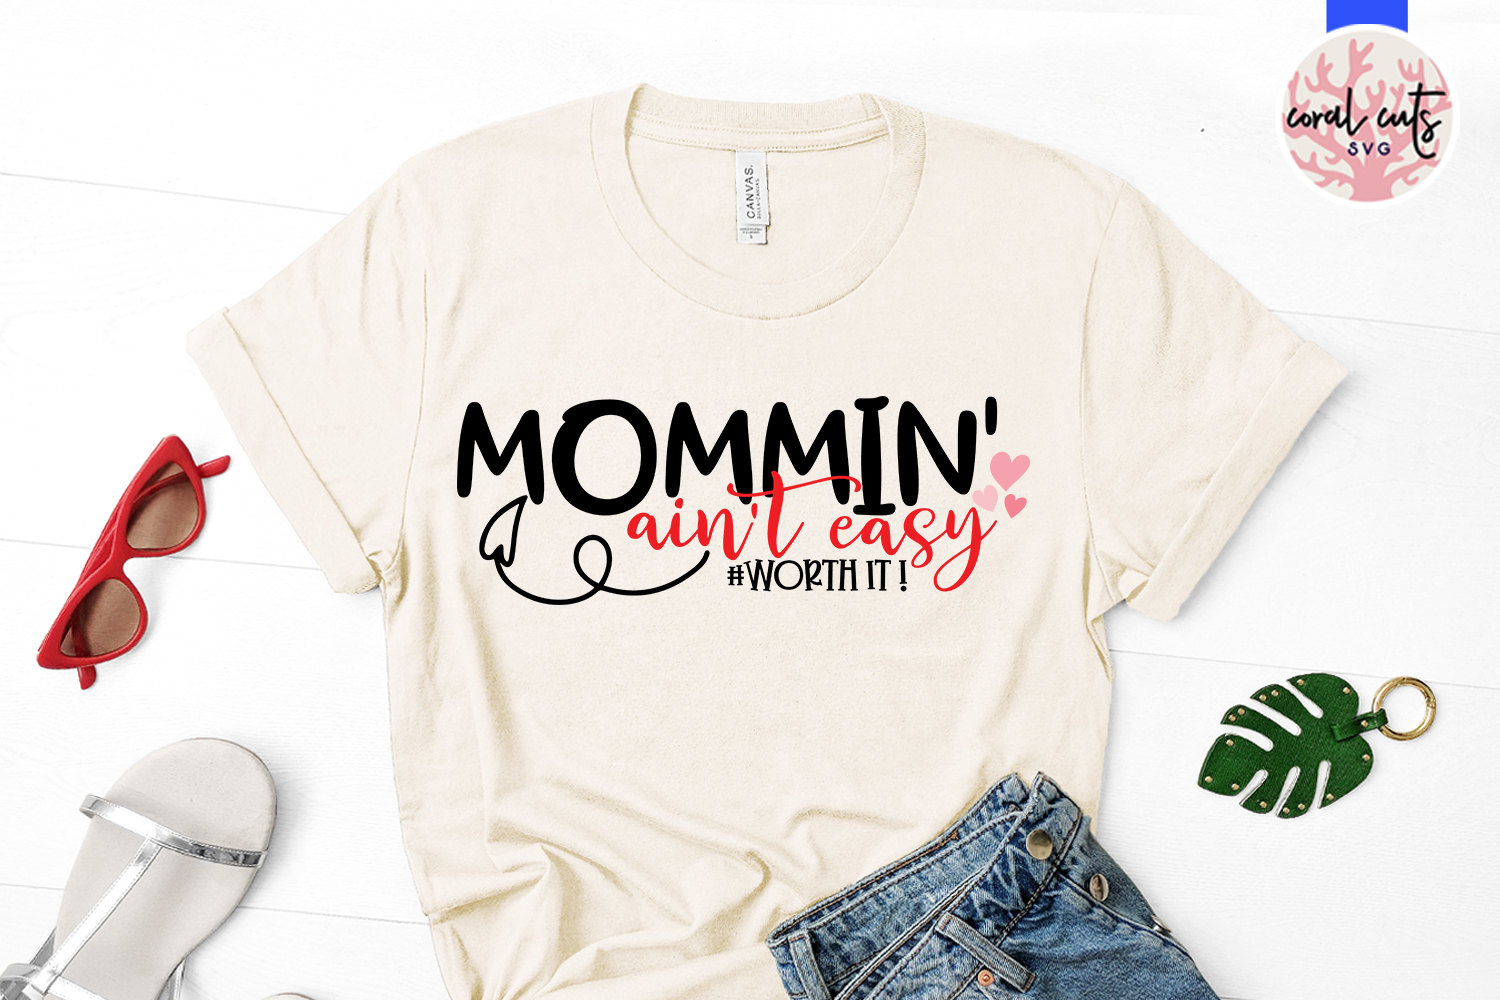 Mommin ain't easy worth it - Mother SVG EPS DXF PNG Cutting example image 2